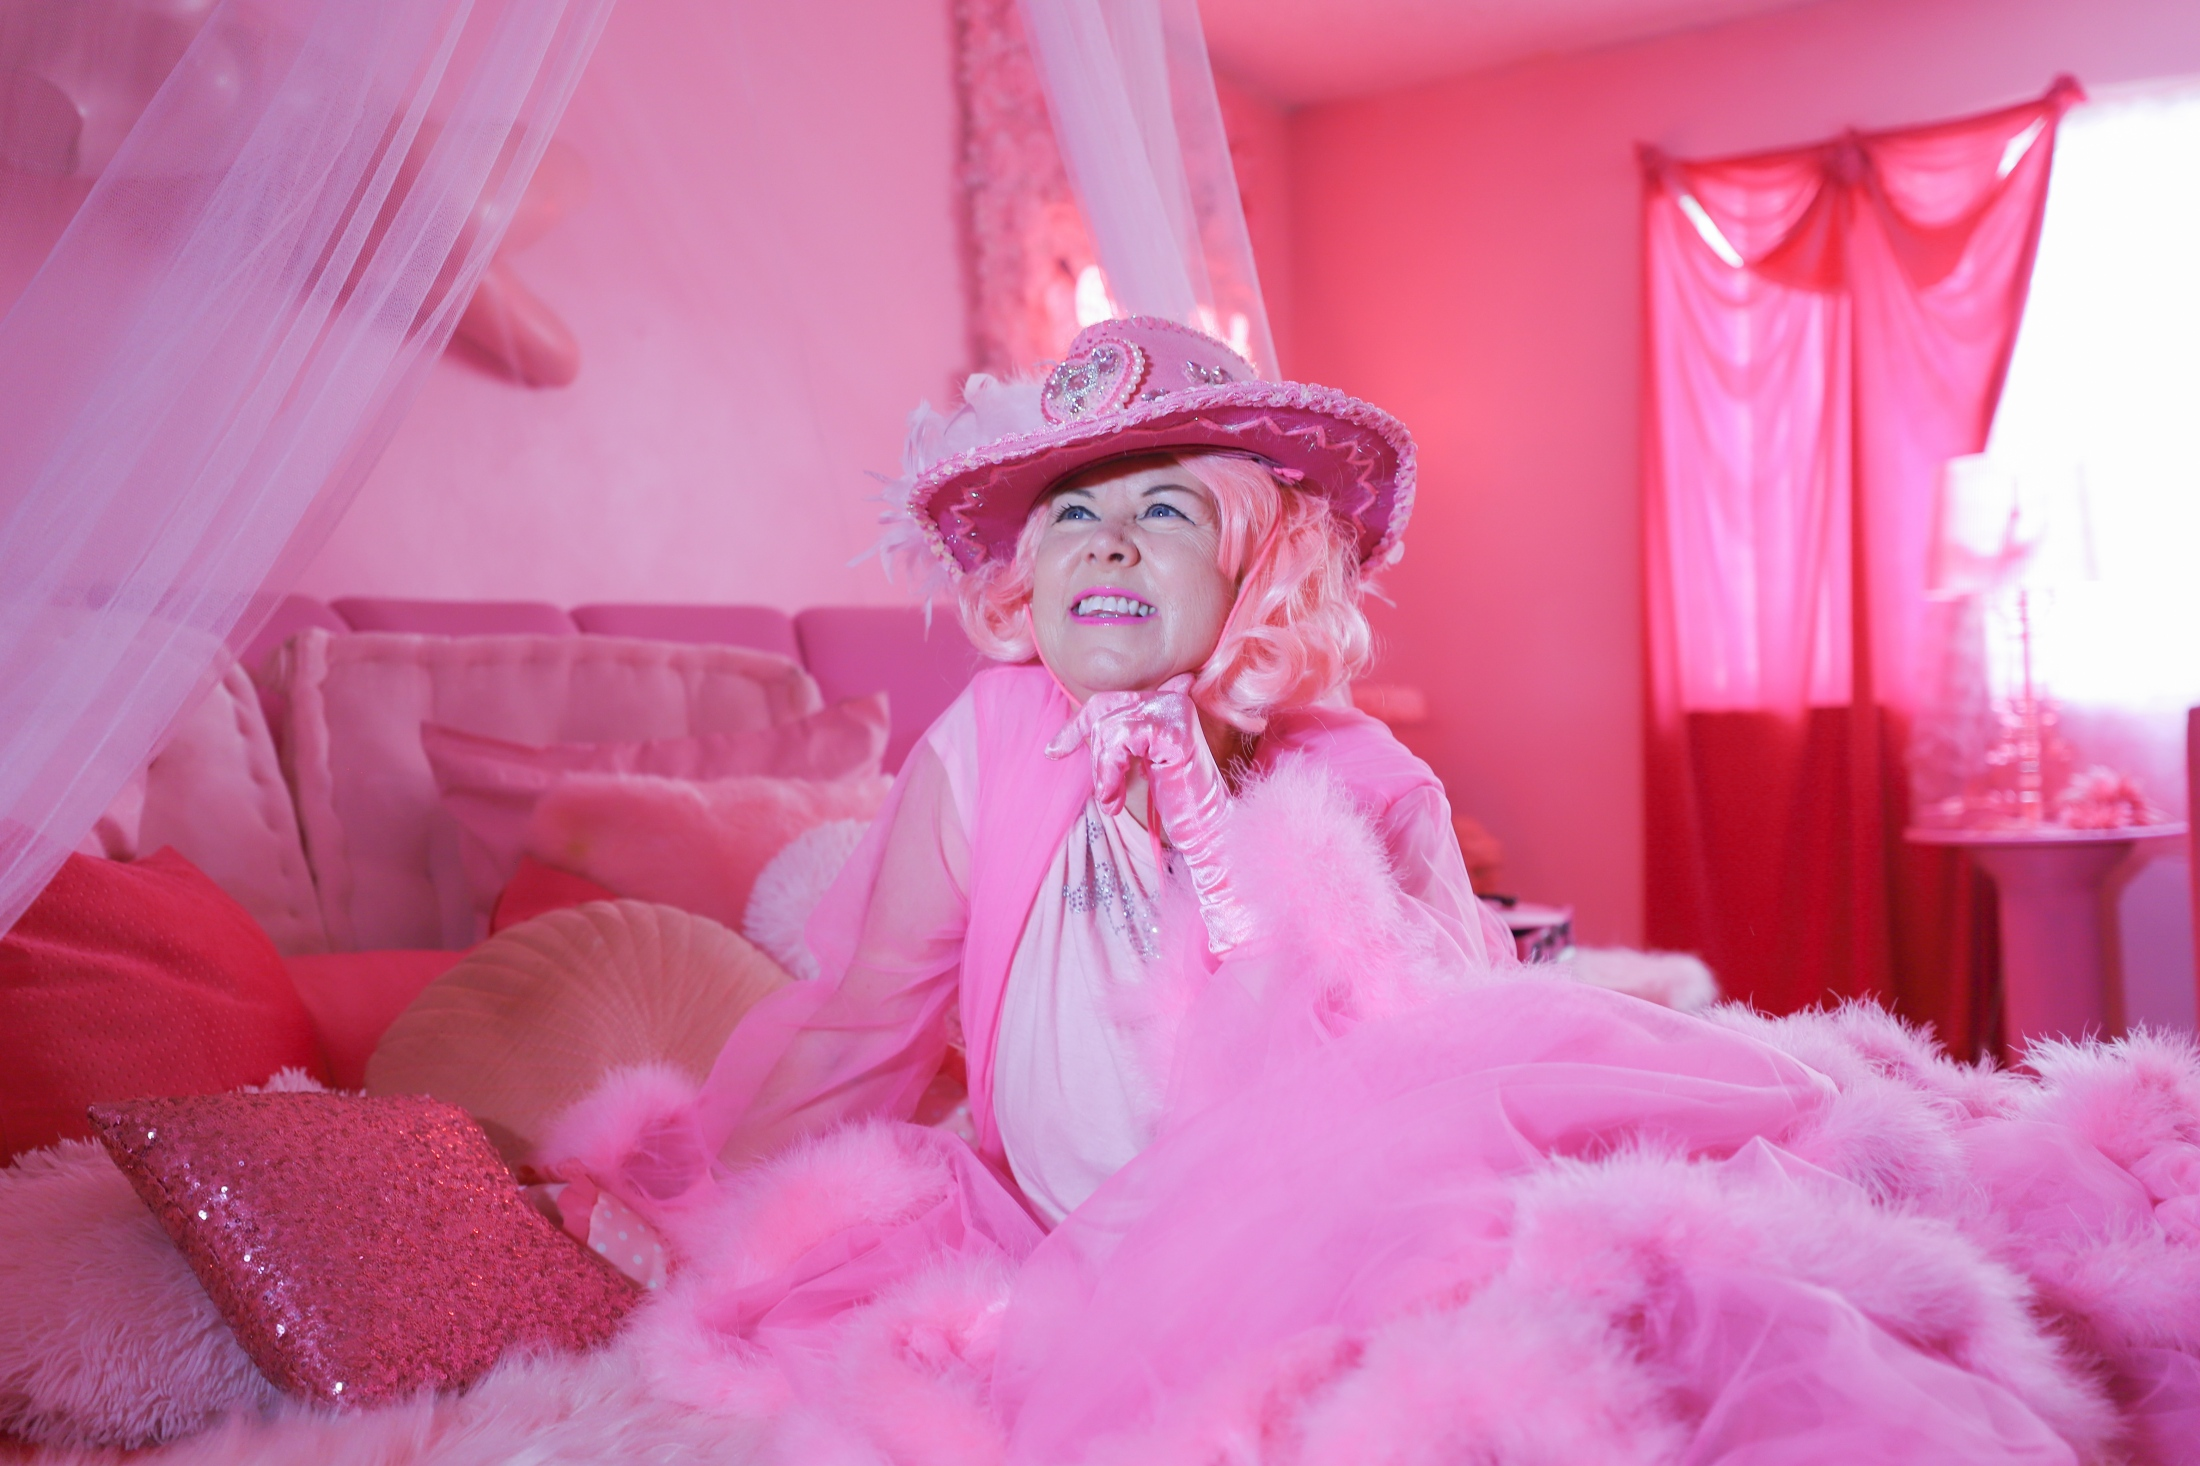 Art and Documentary Photography - Loading Silva_Pink_Lady_of_Hollywood_4533.jpg